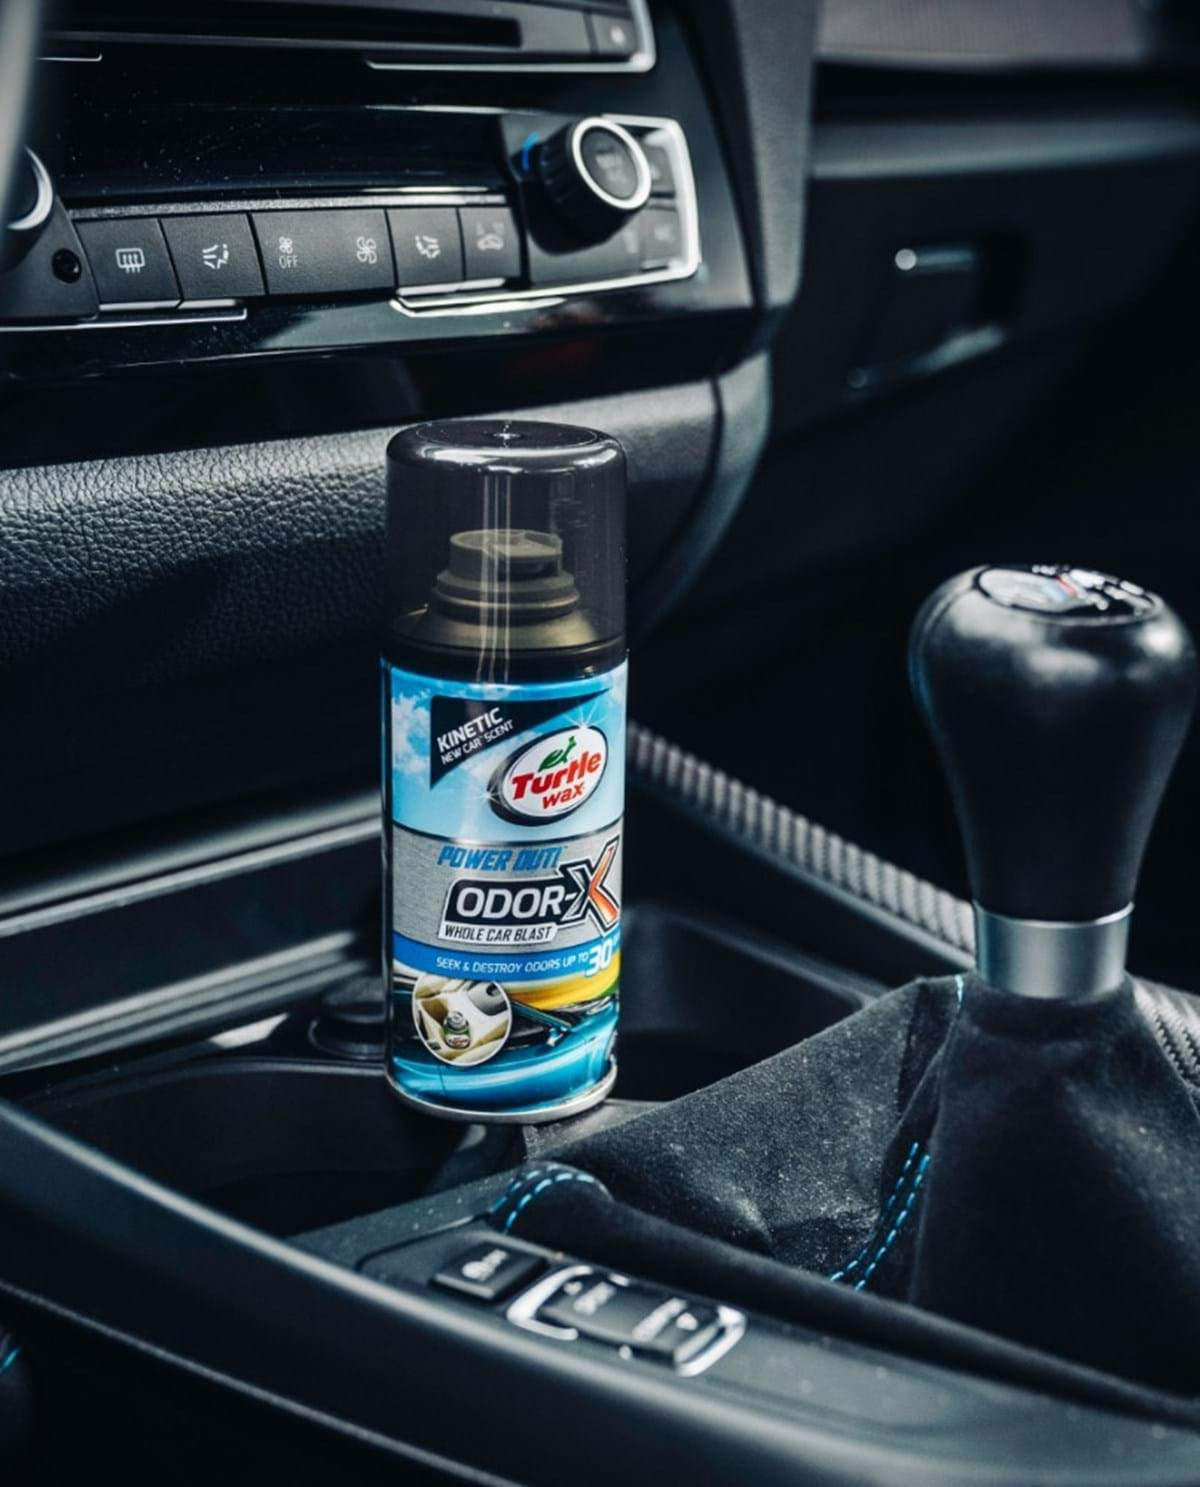 get smoke smell out of car vents